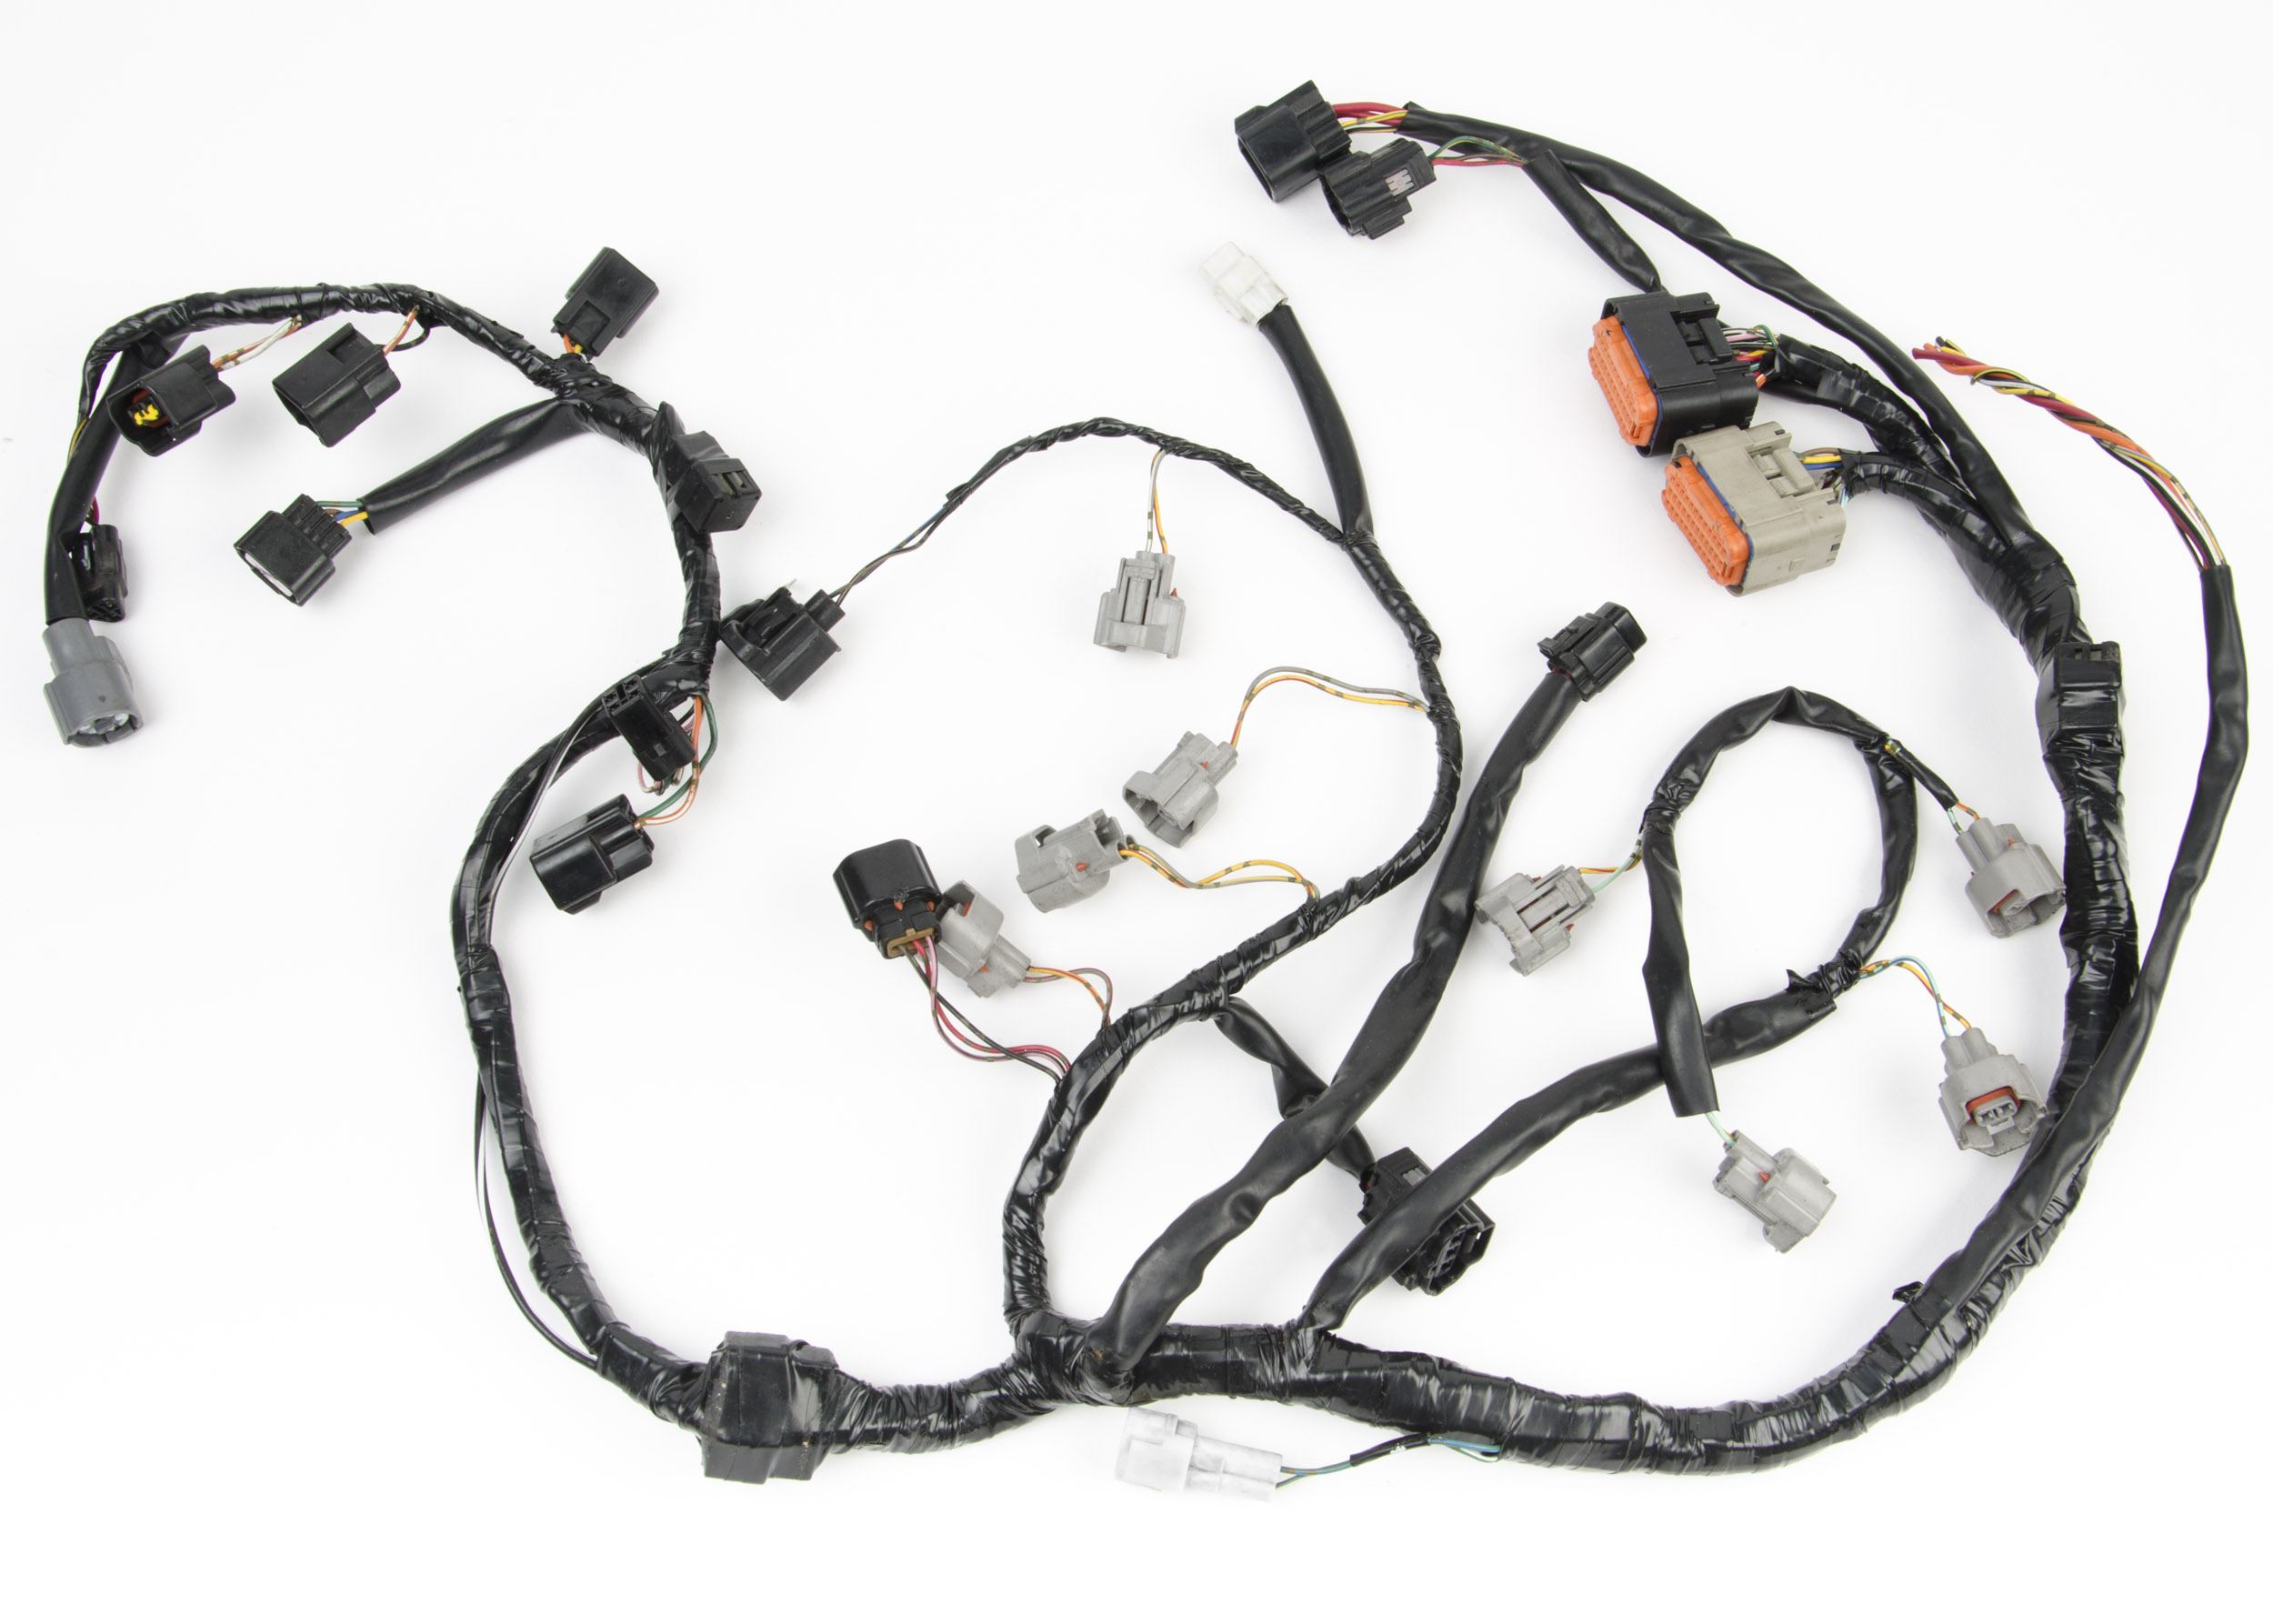 Five Things Every Wiring Harness Buyer Should Know